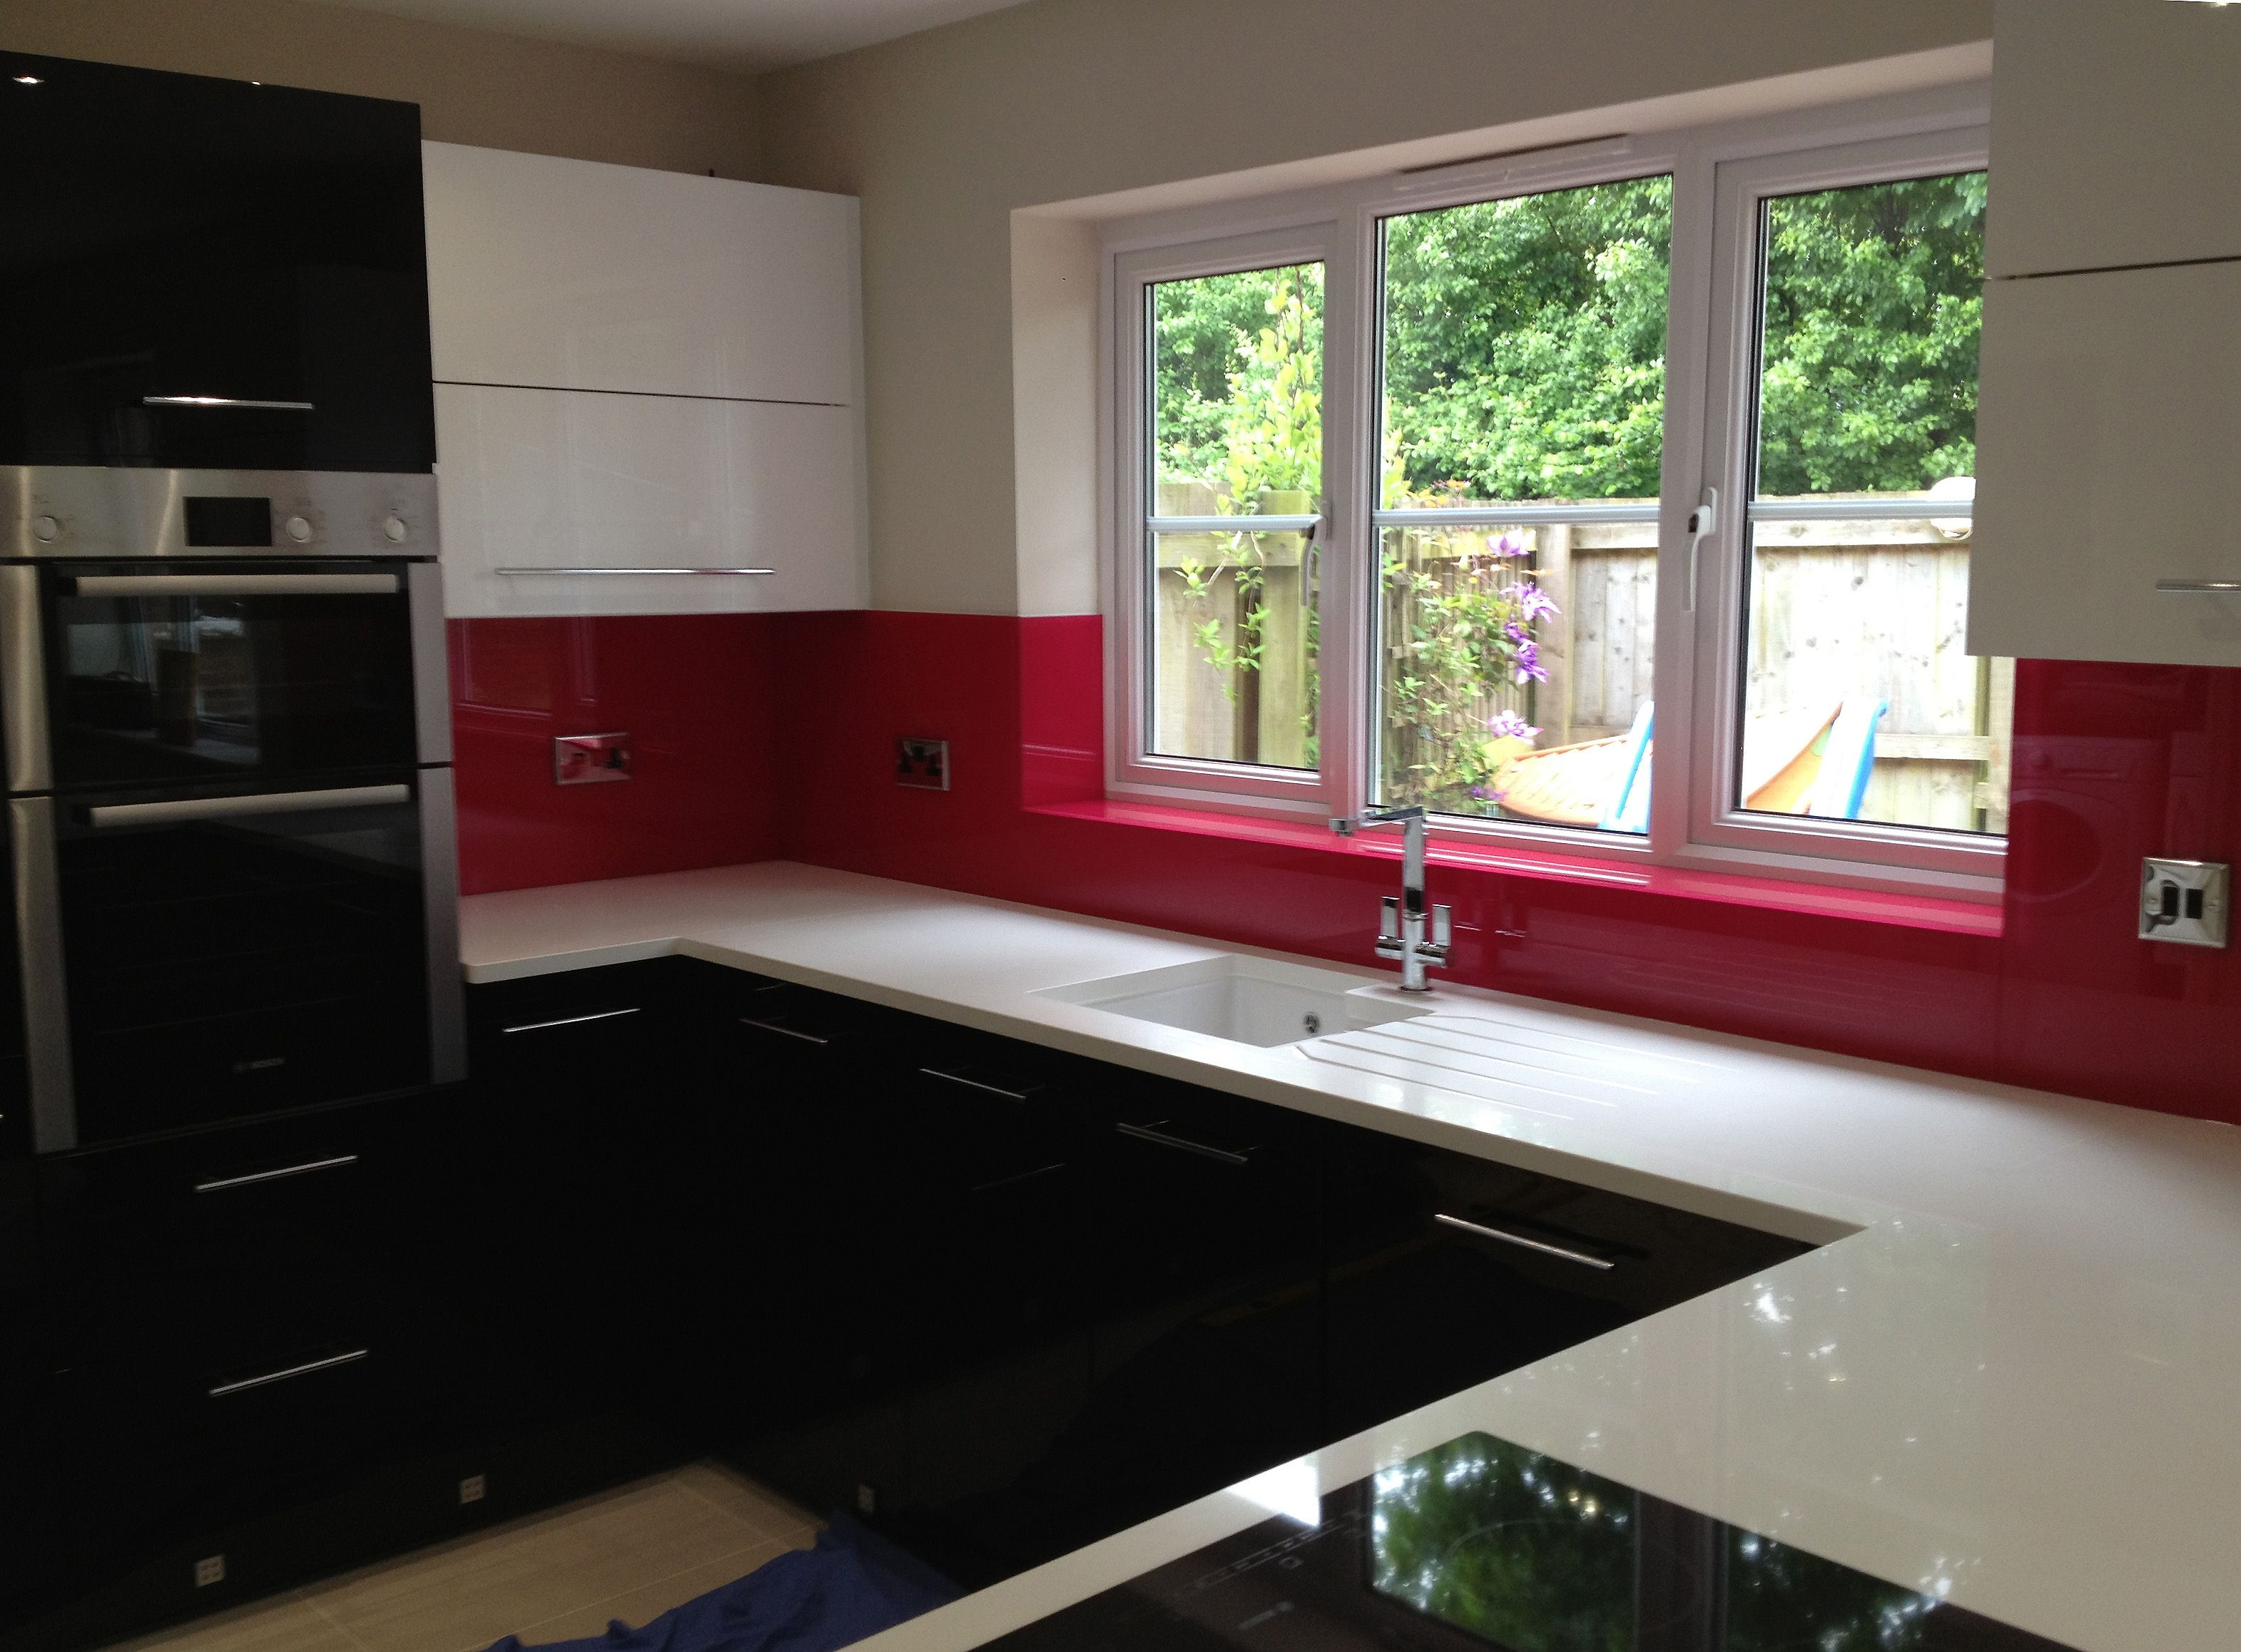 Lovely cherry red glass splashback fitted by easy glass splashbacks showing a glass window sill Kitchen profile glass design